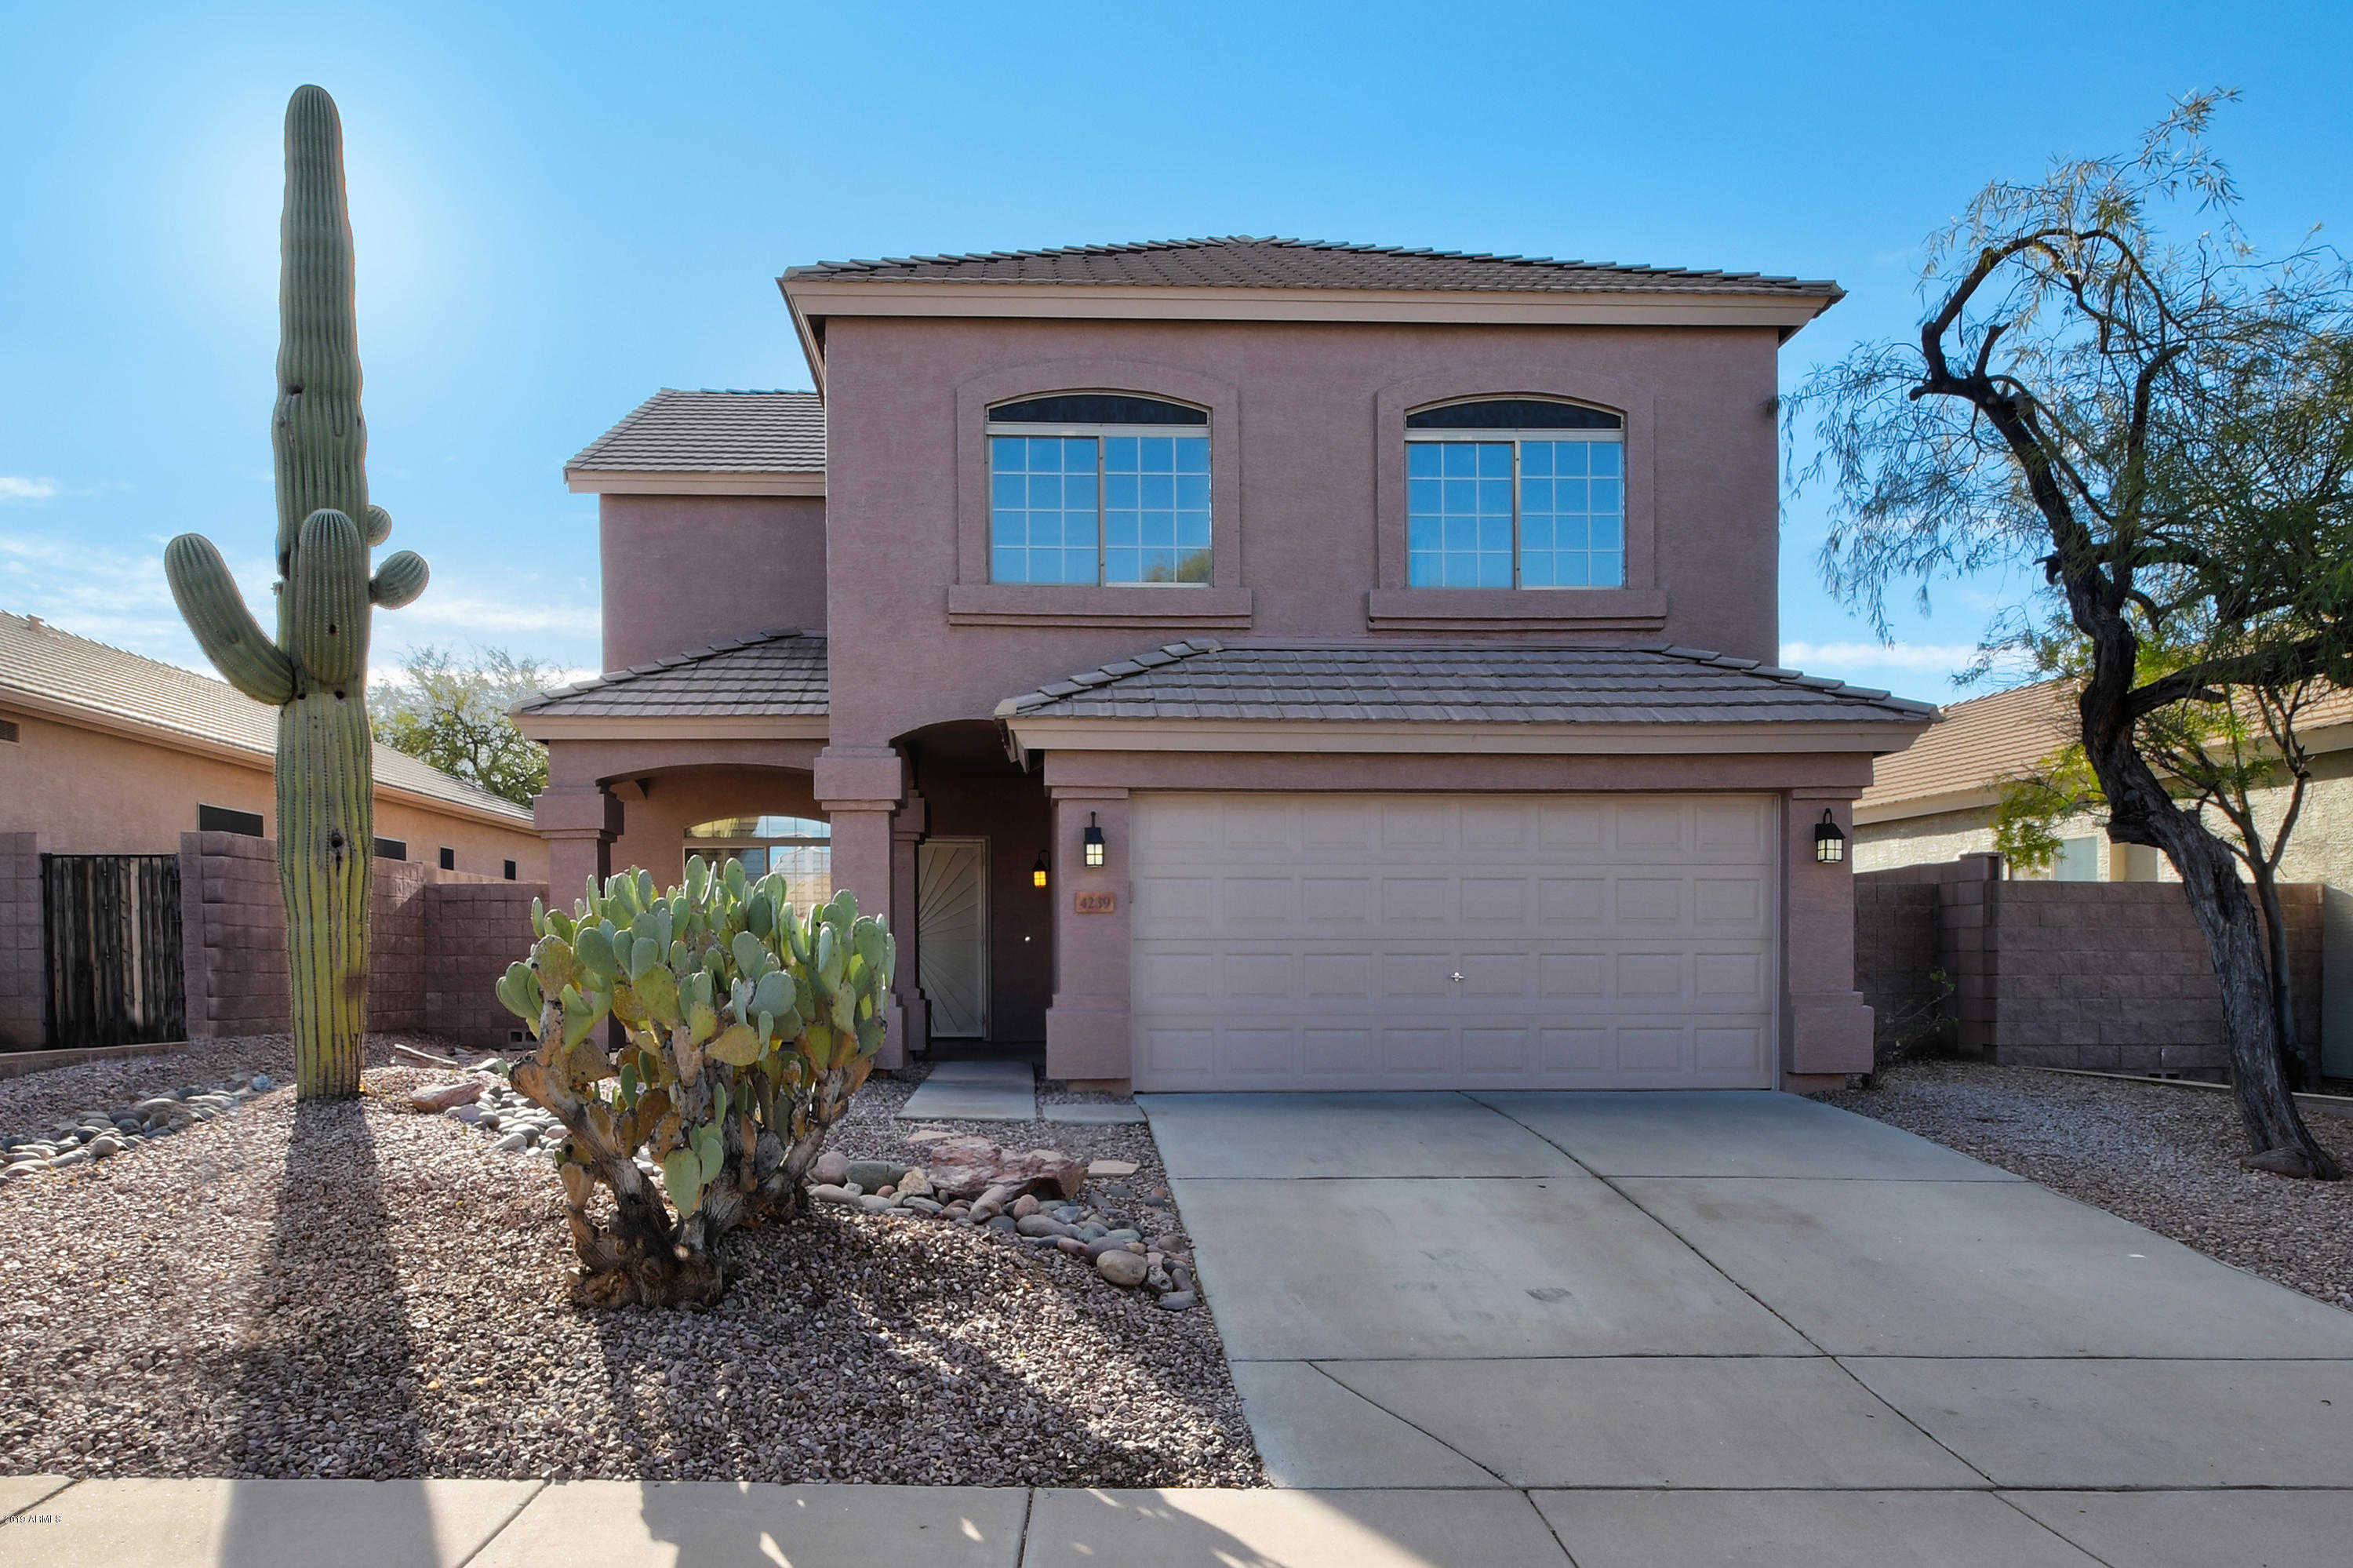 $450,000 - 4Br/3Ba - Home for Sale in Tatum Highlands, Phoenix